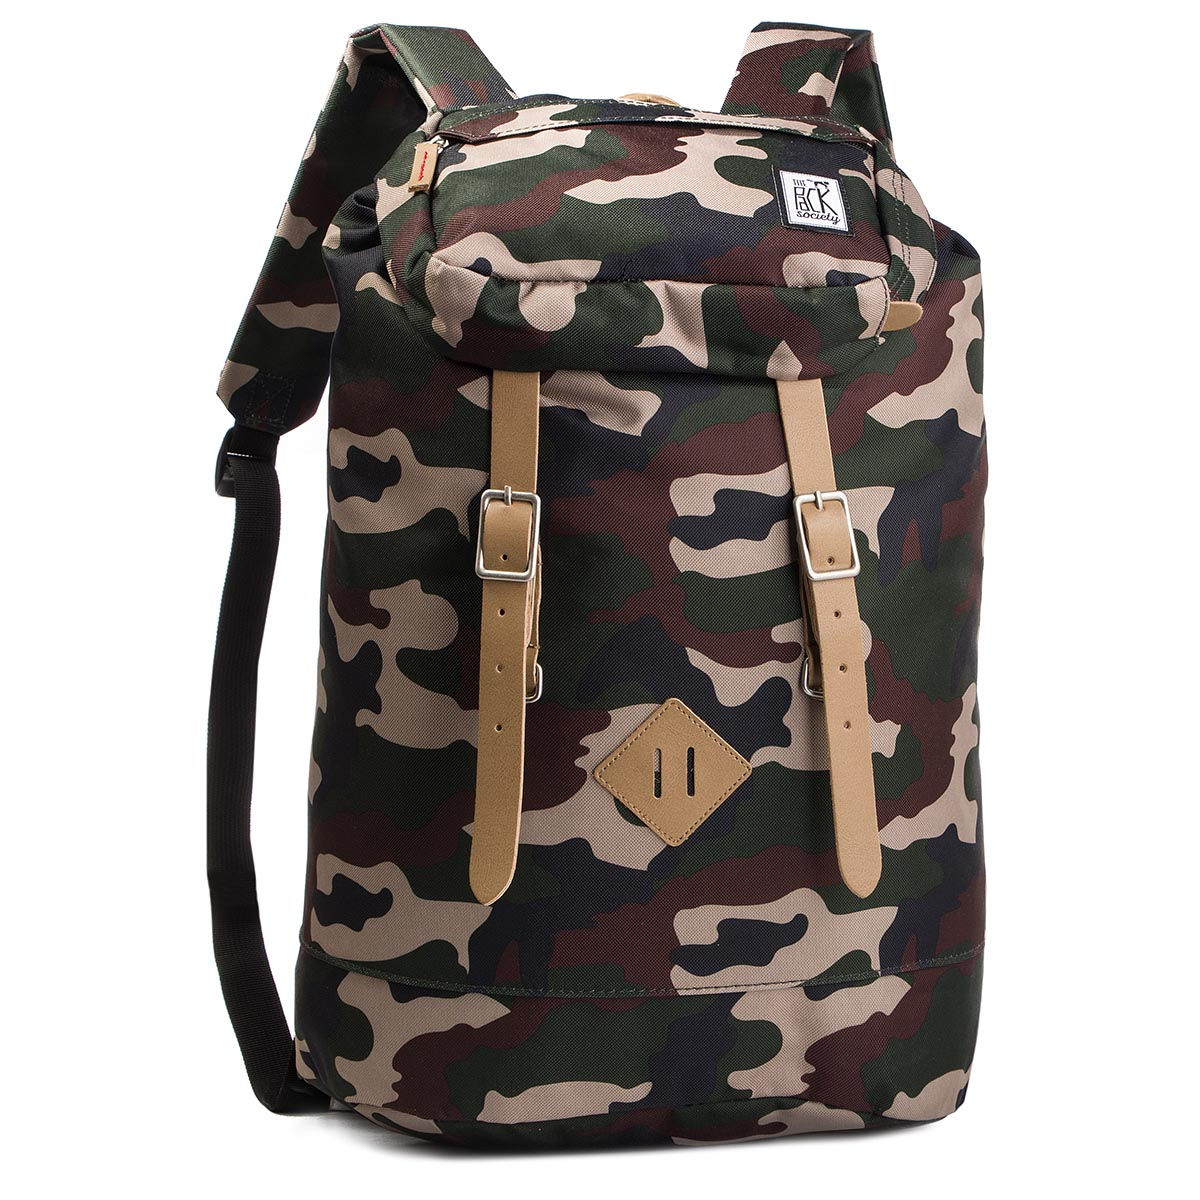 Rucsac THE PACK SOCIETY - 191CPR703.74 Colorat